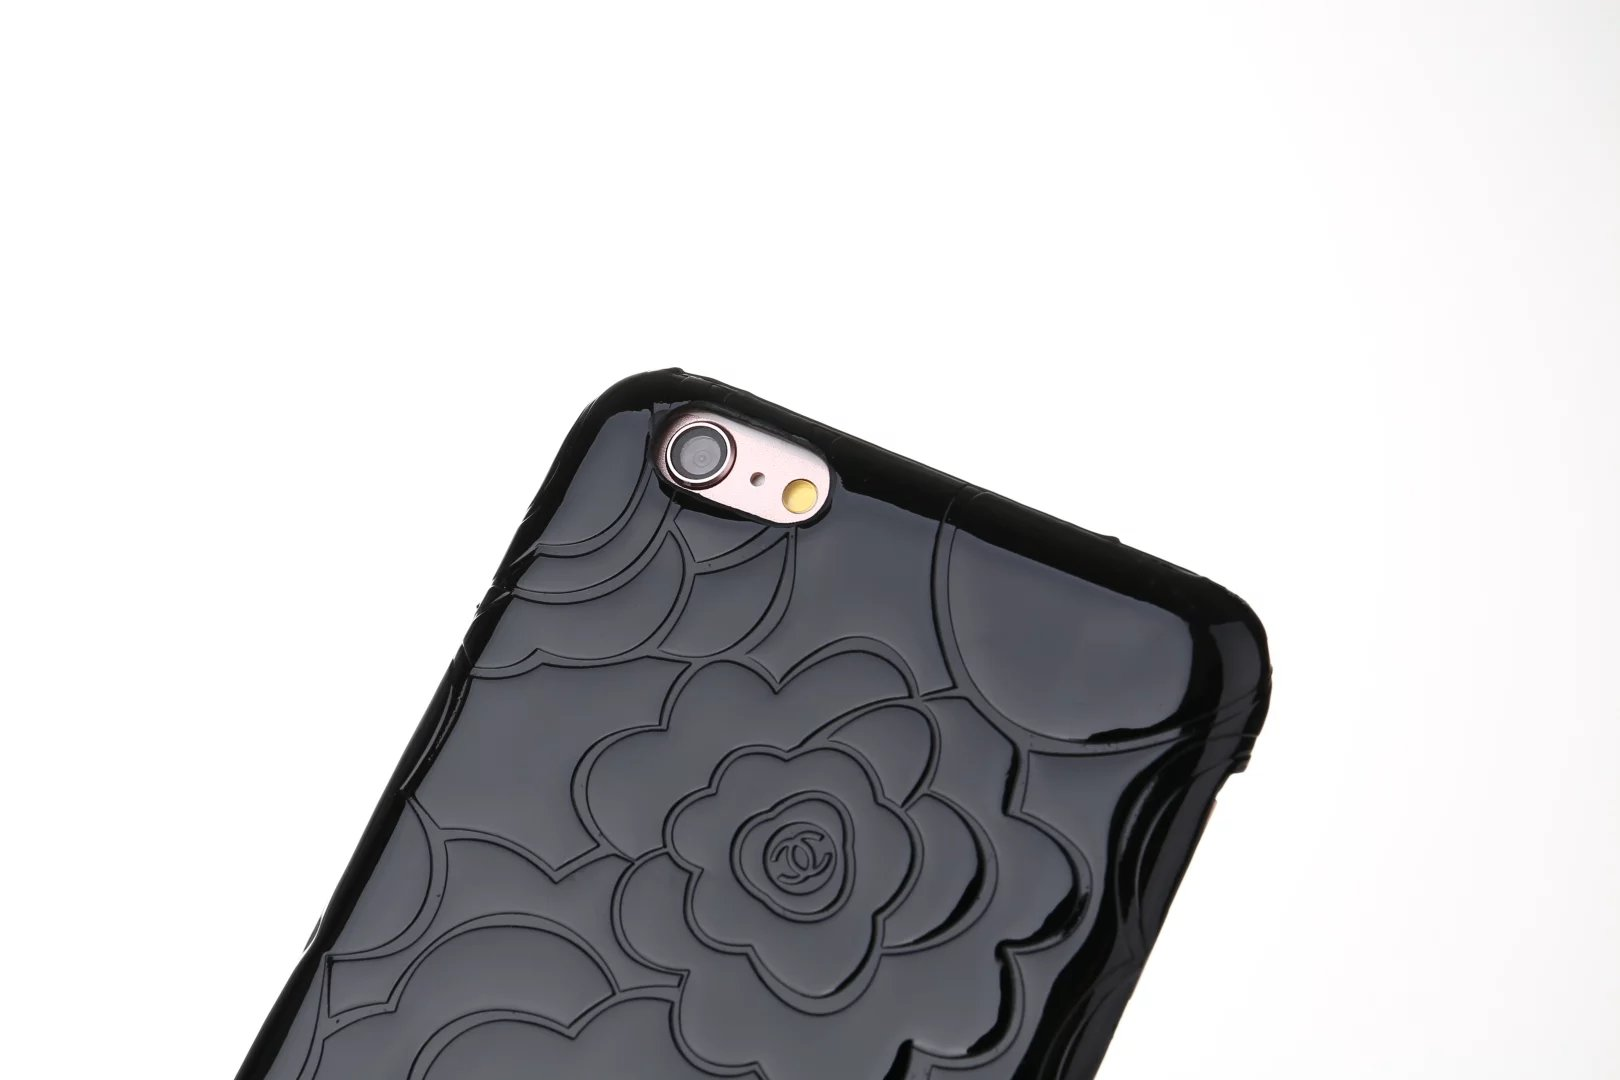 cover case iphone 6 Plus iphone 6 Plus covers best fashion iphone6 plus case mophie juice pack 6 cases iphone 6 best cell phone case companies the phone case store iphone for cases how to charge mophie iphone 6